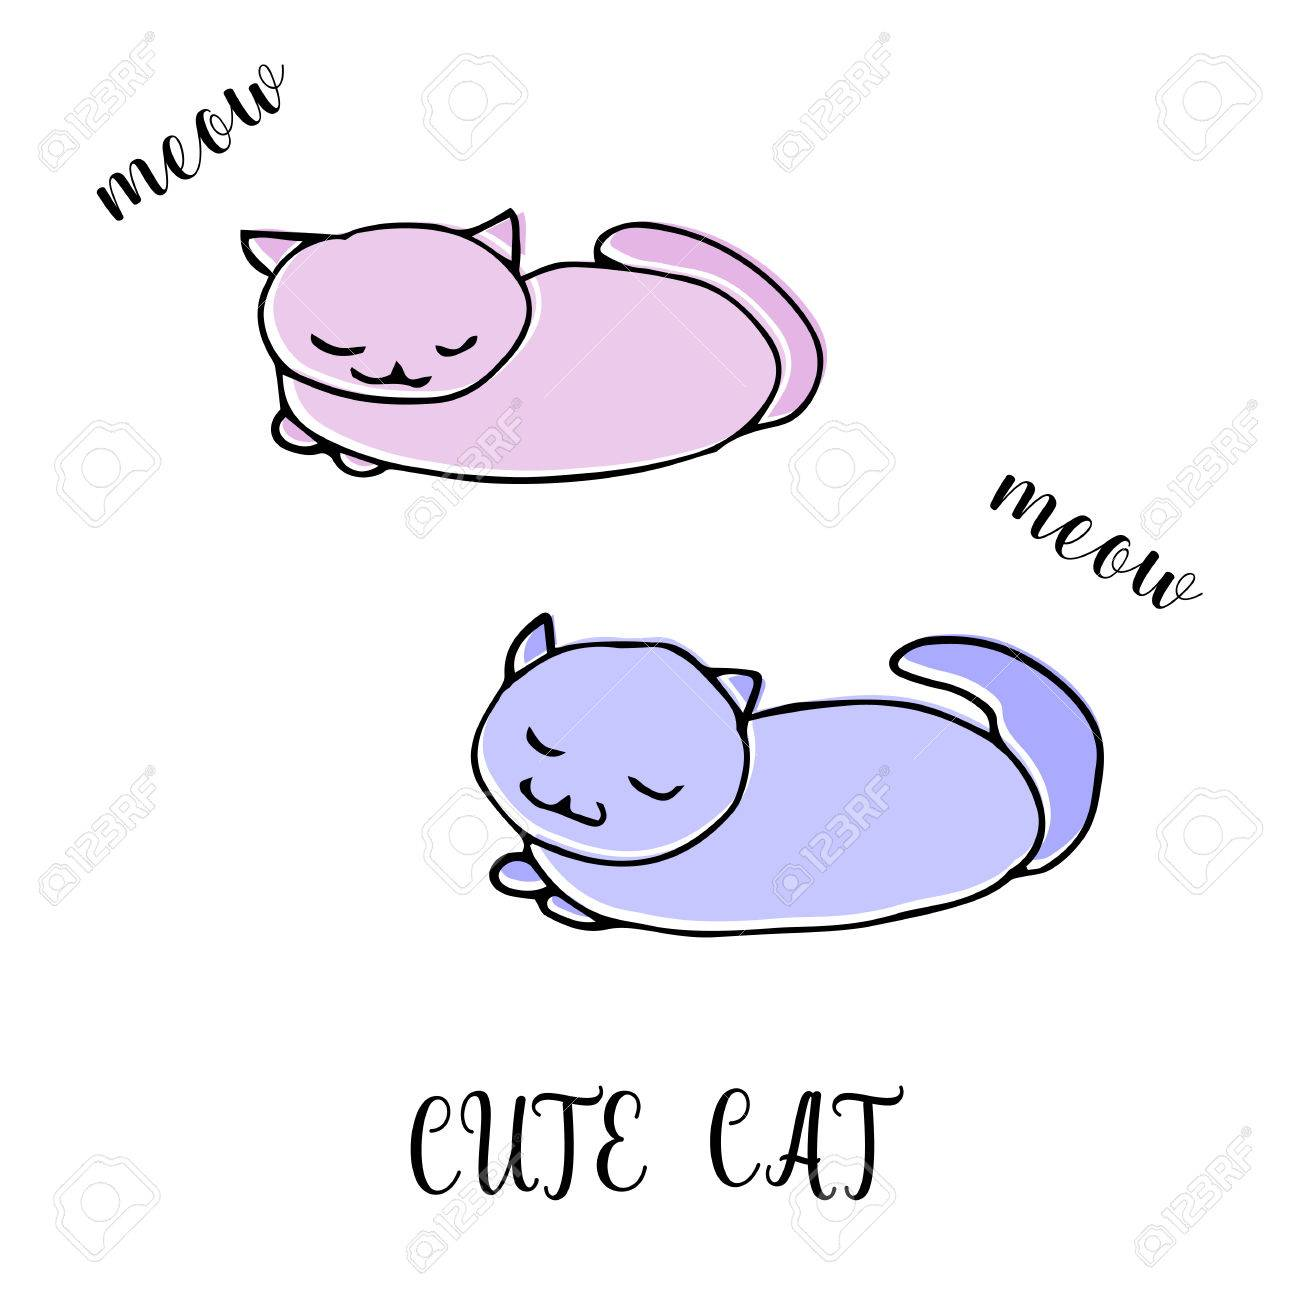 Cat Drawing Template At Getdrawings Free For Personal Use Cat